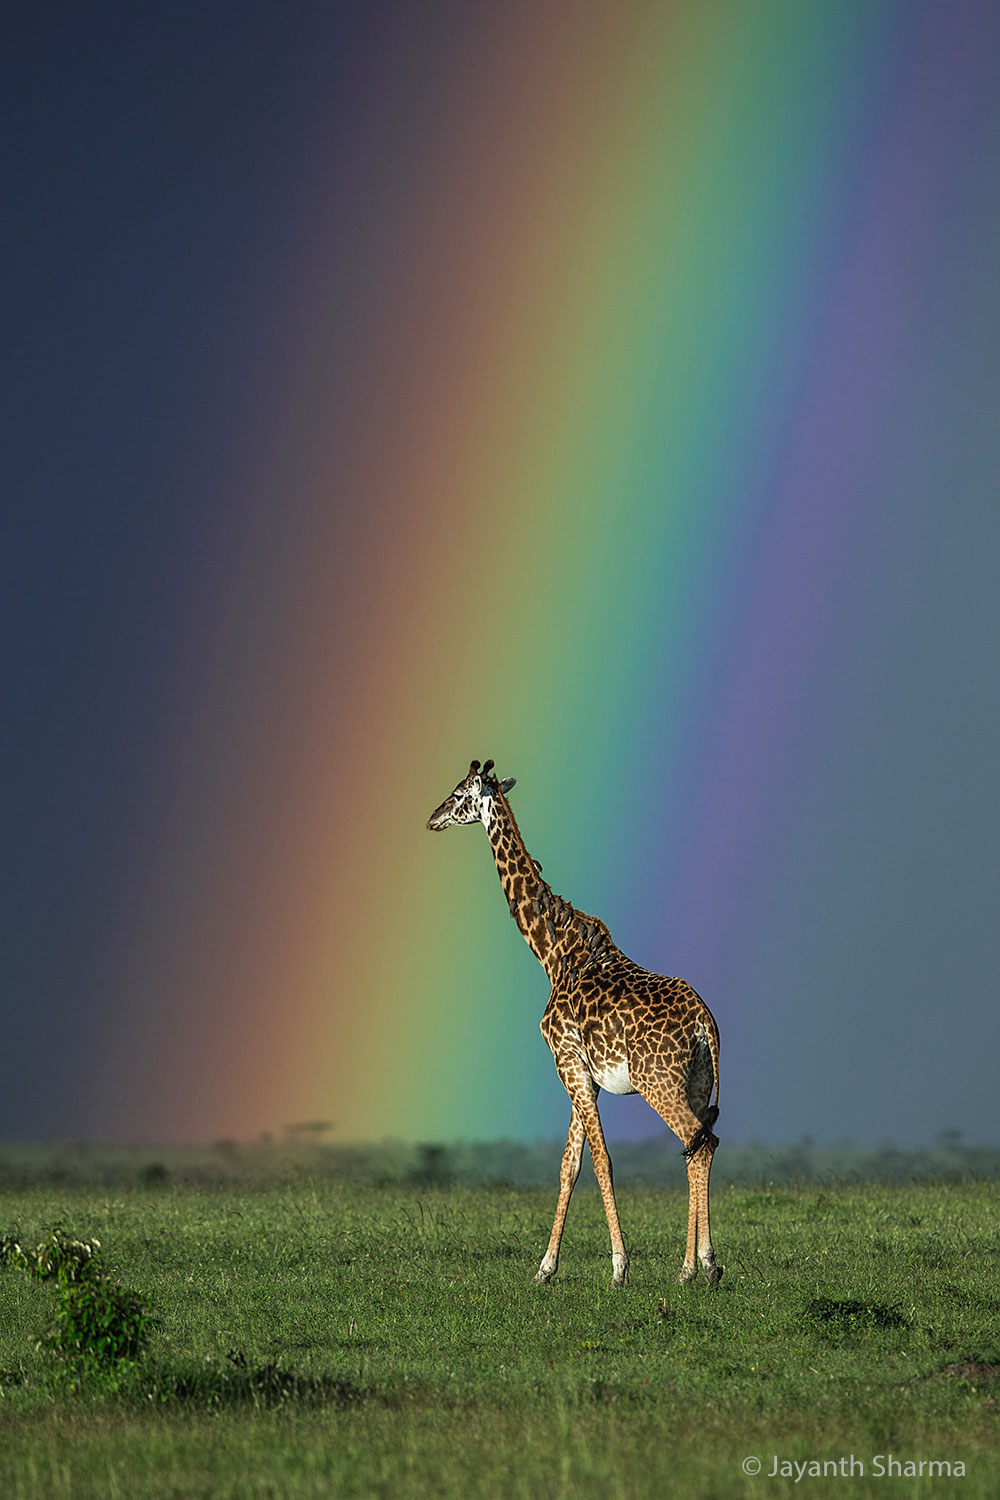 Giraffe and rainbow, Masai Mara. © Jayanth Sharma